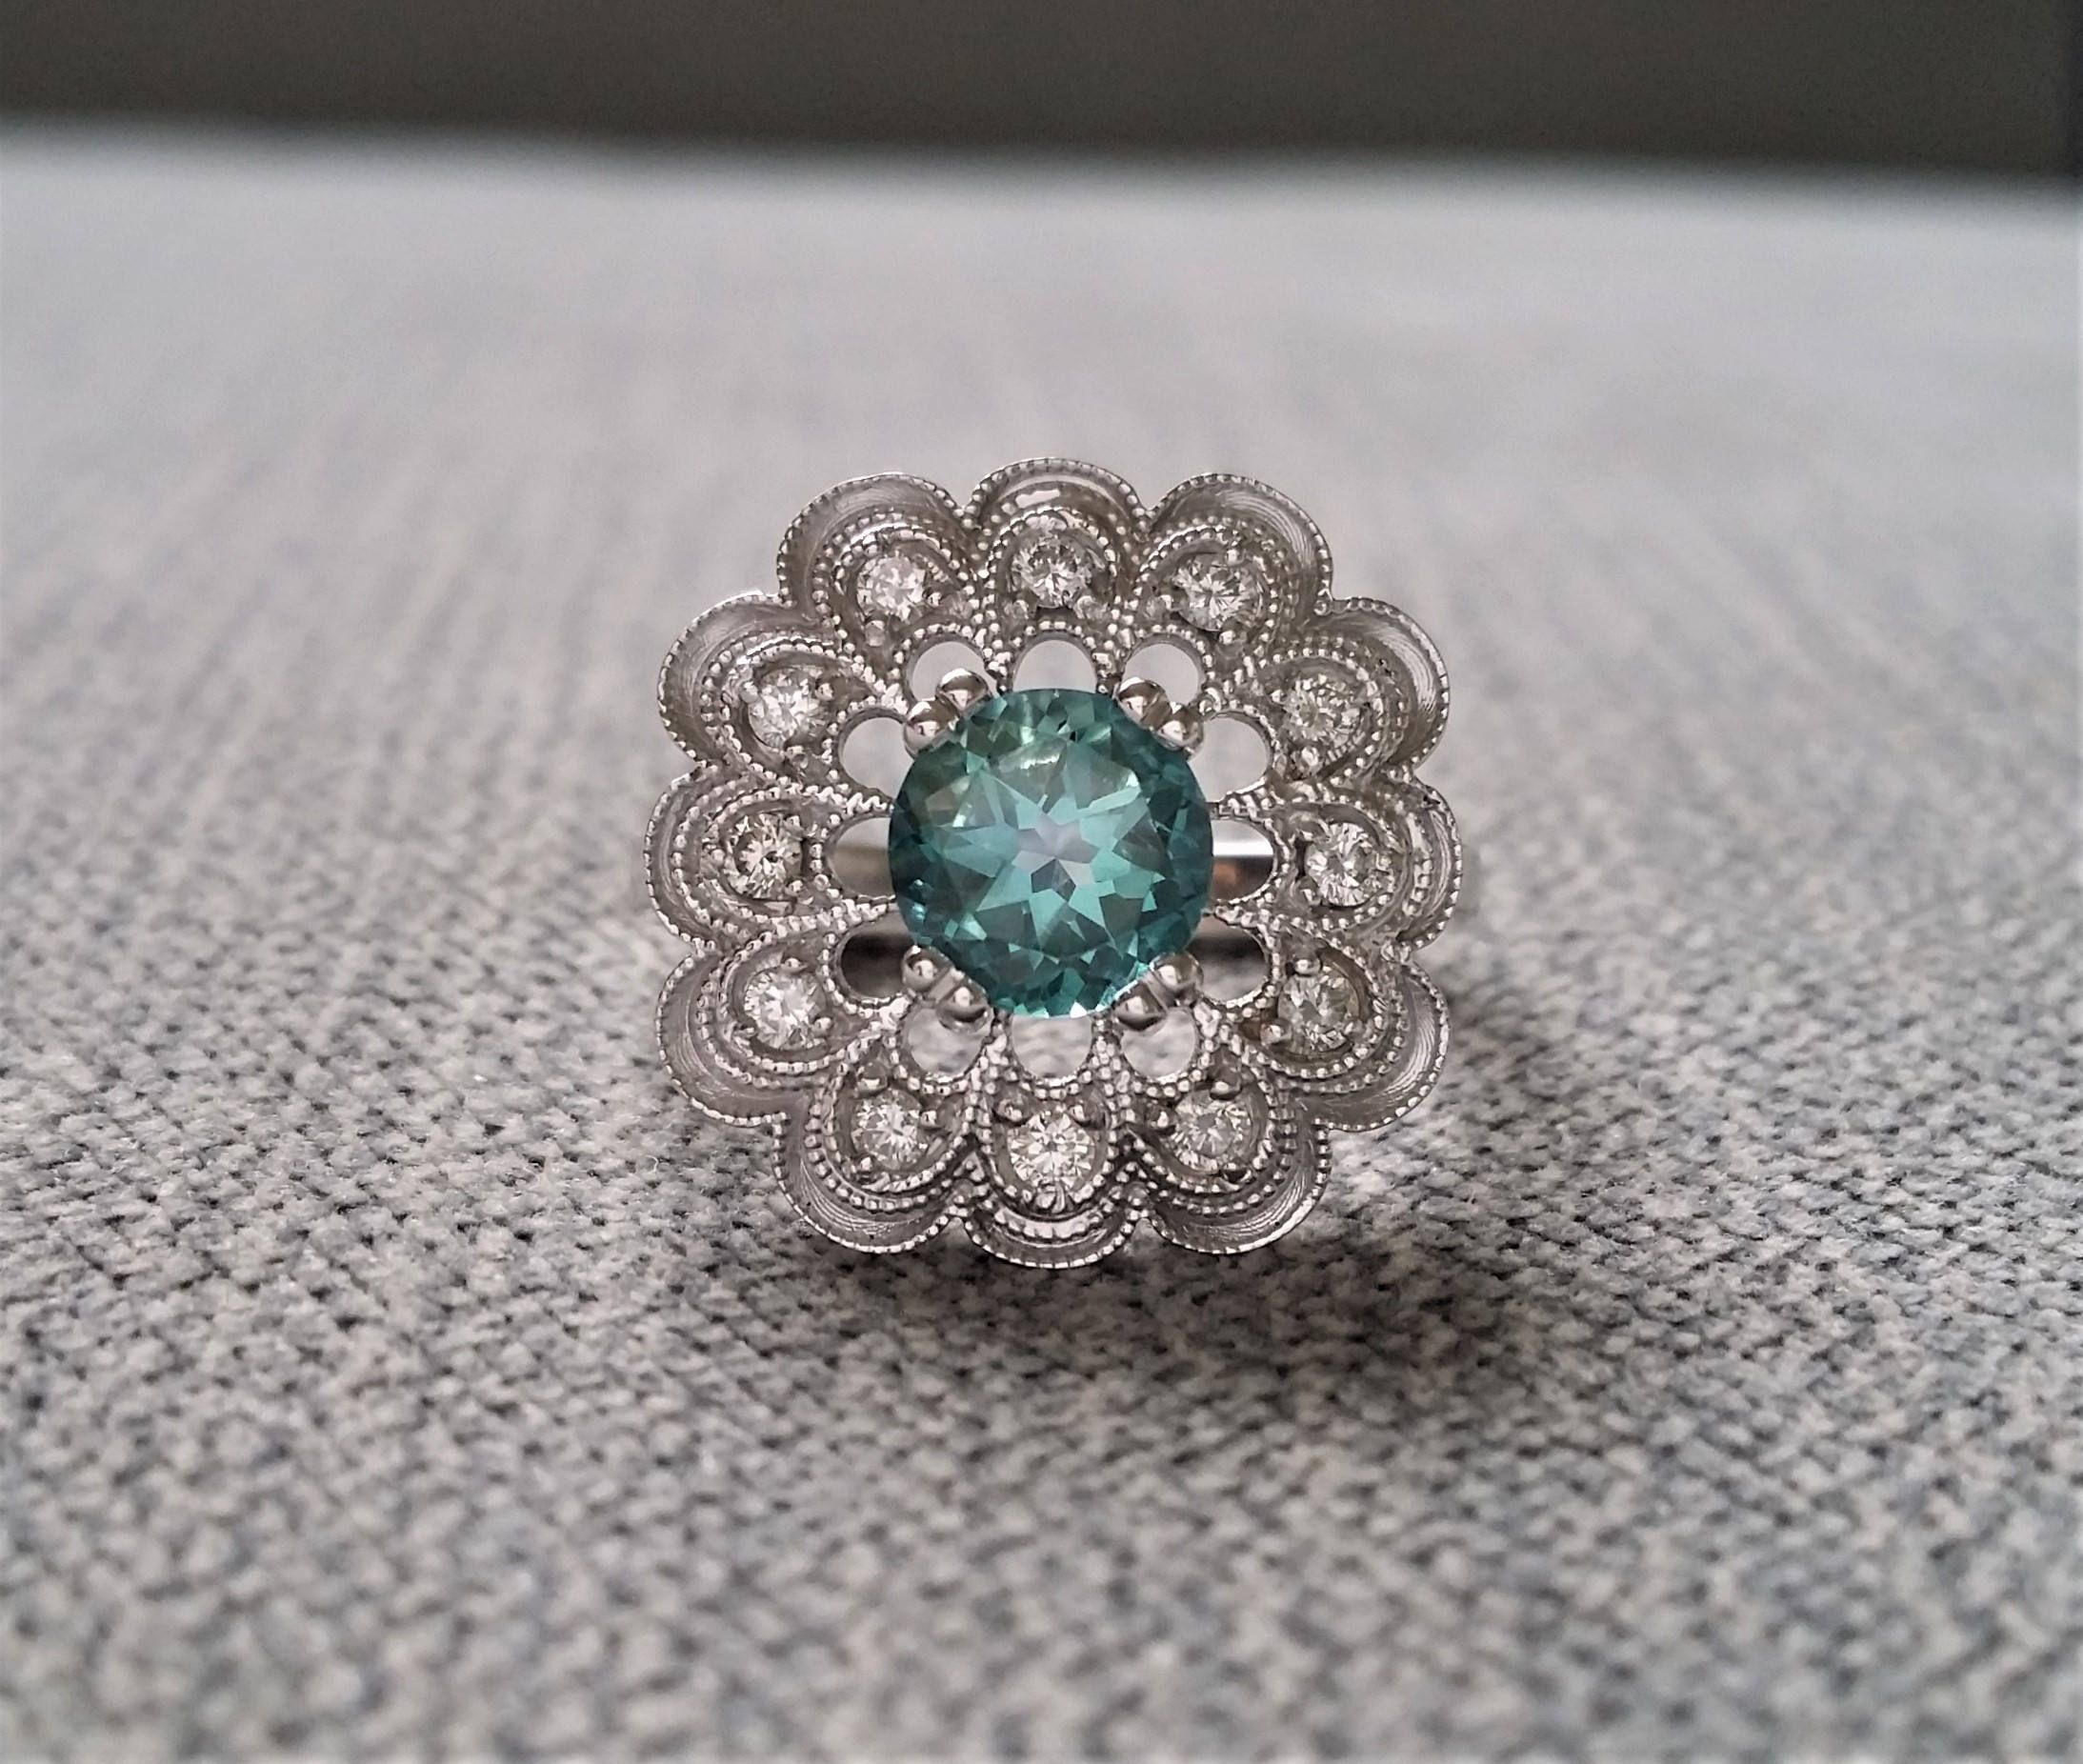 white on chester jewelry diamond ring img teal shop pegg jewellers rings gold london home